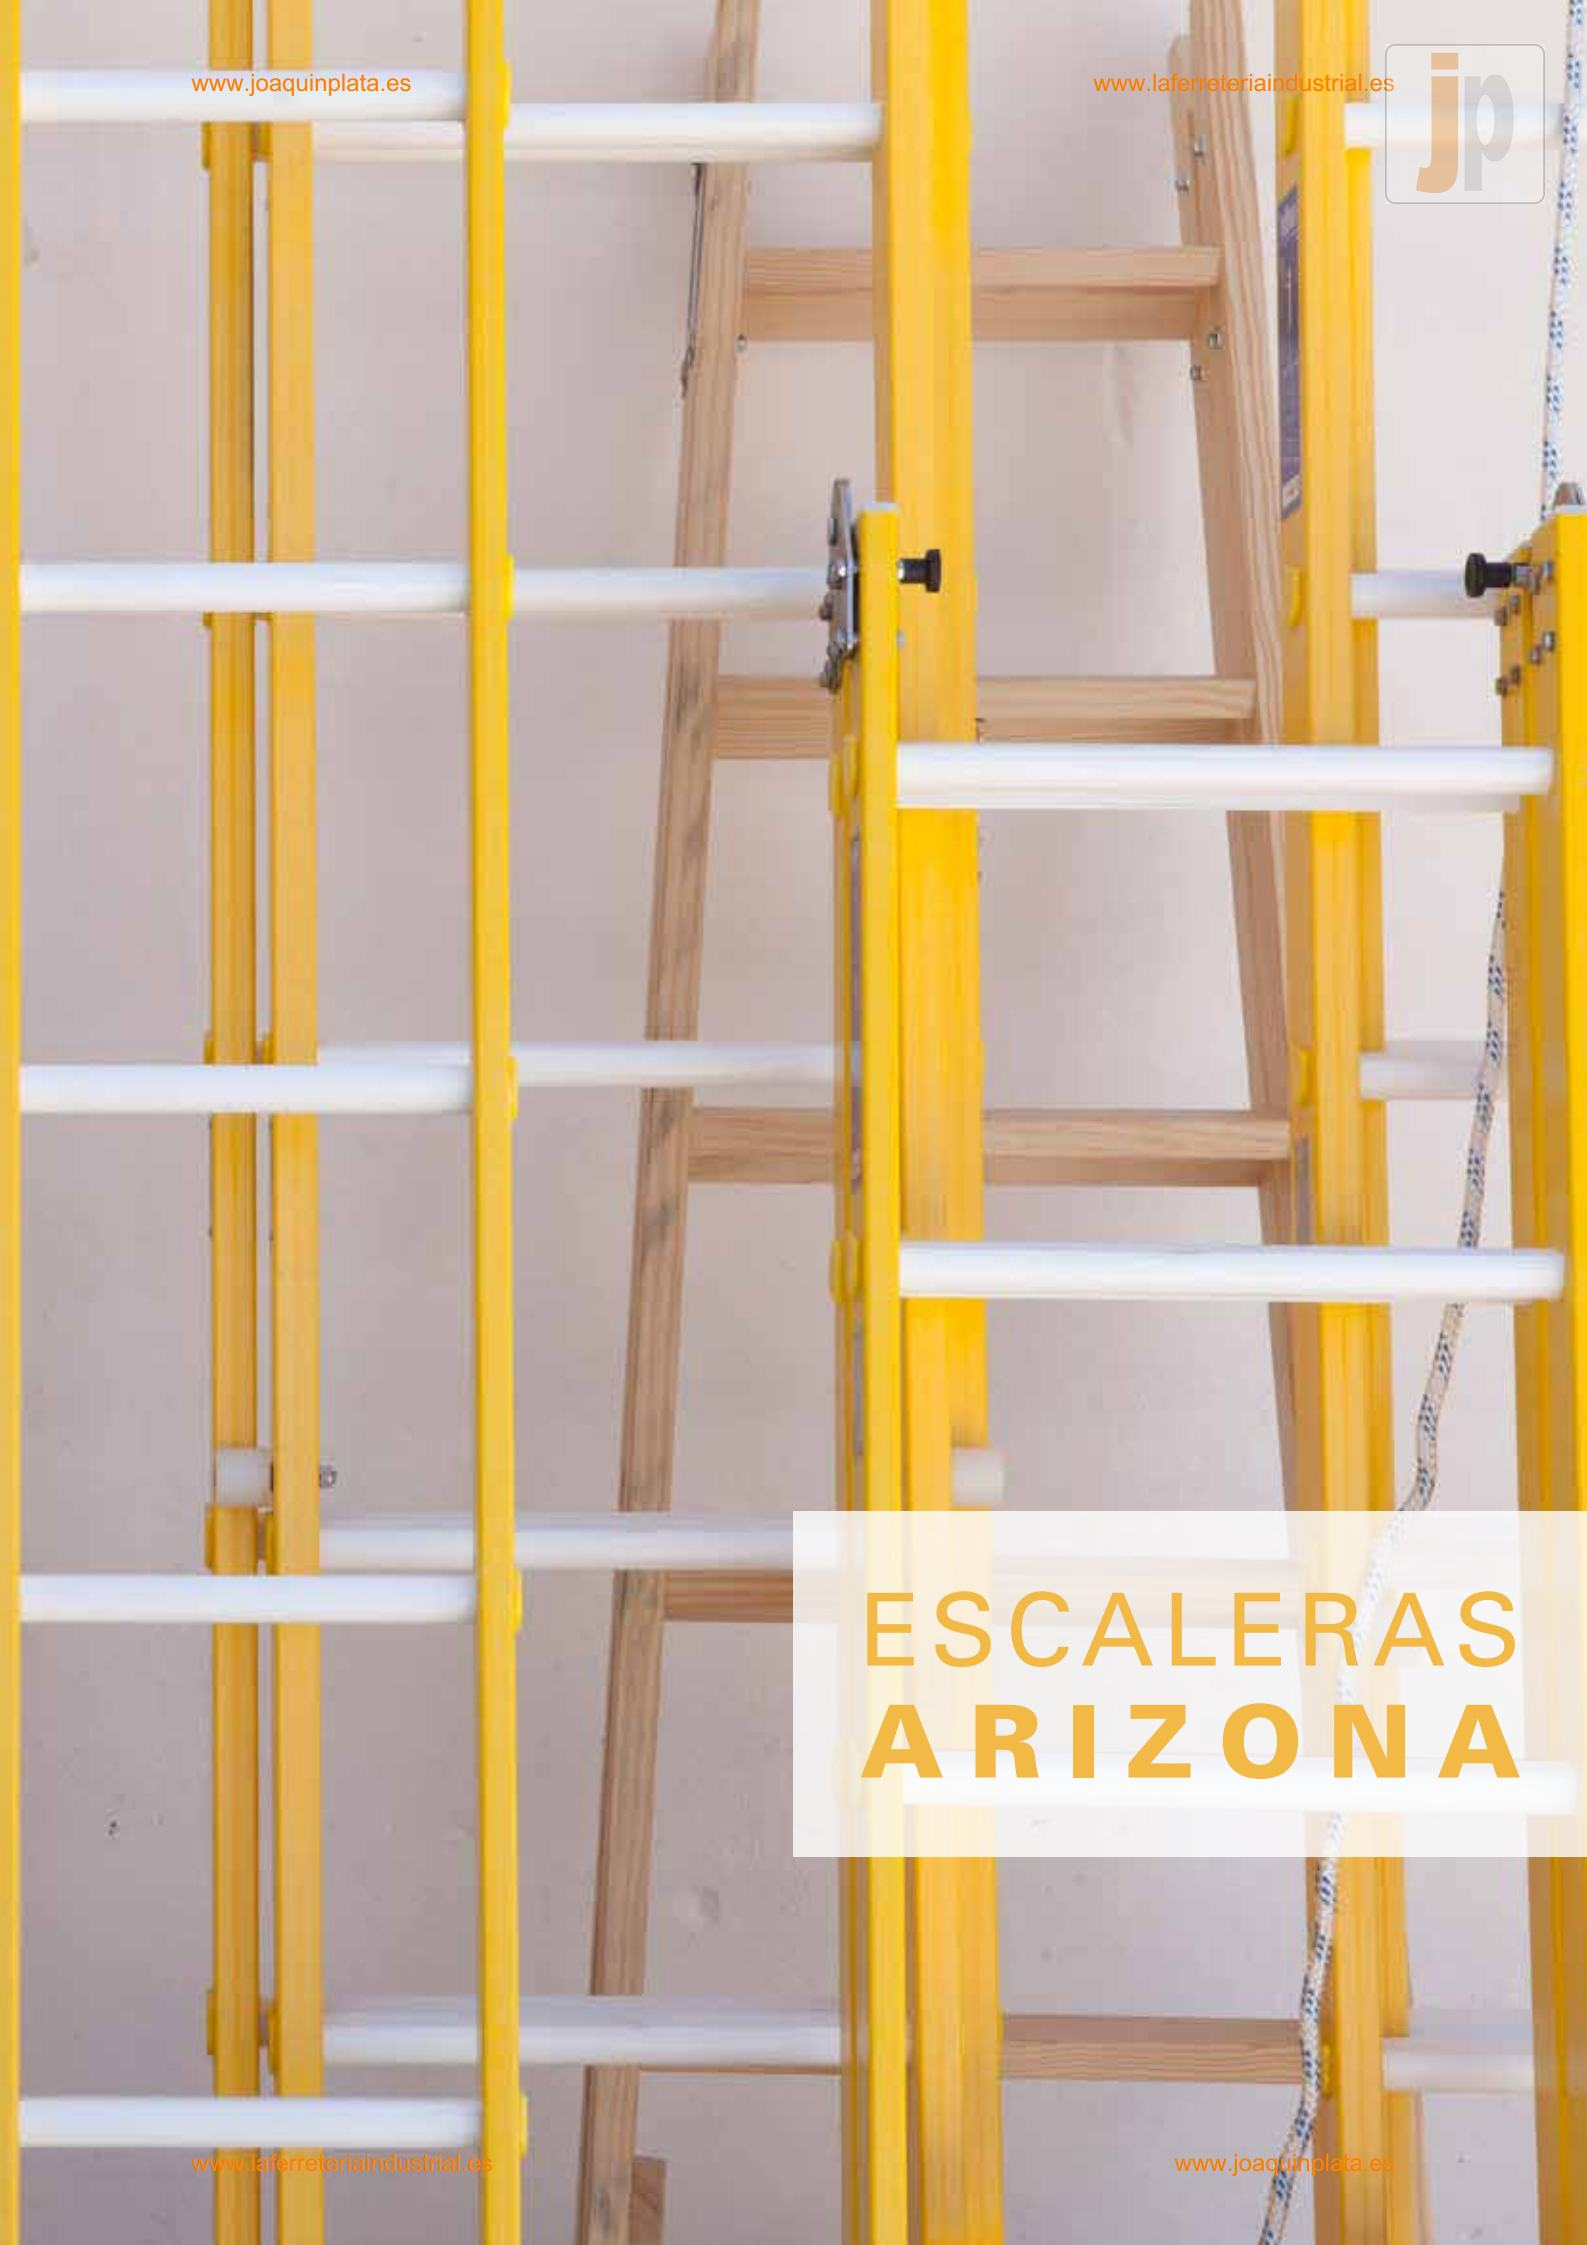 Arizona escaleras